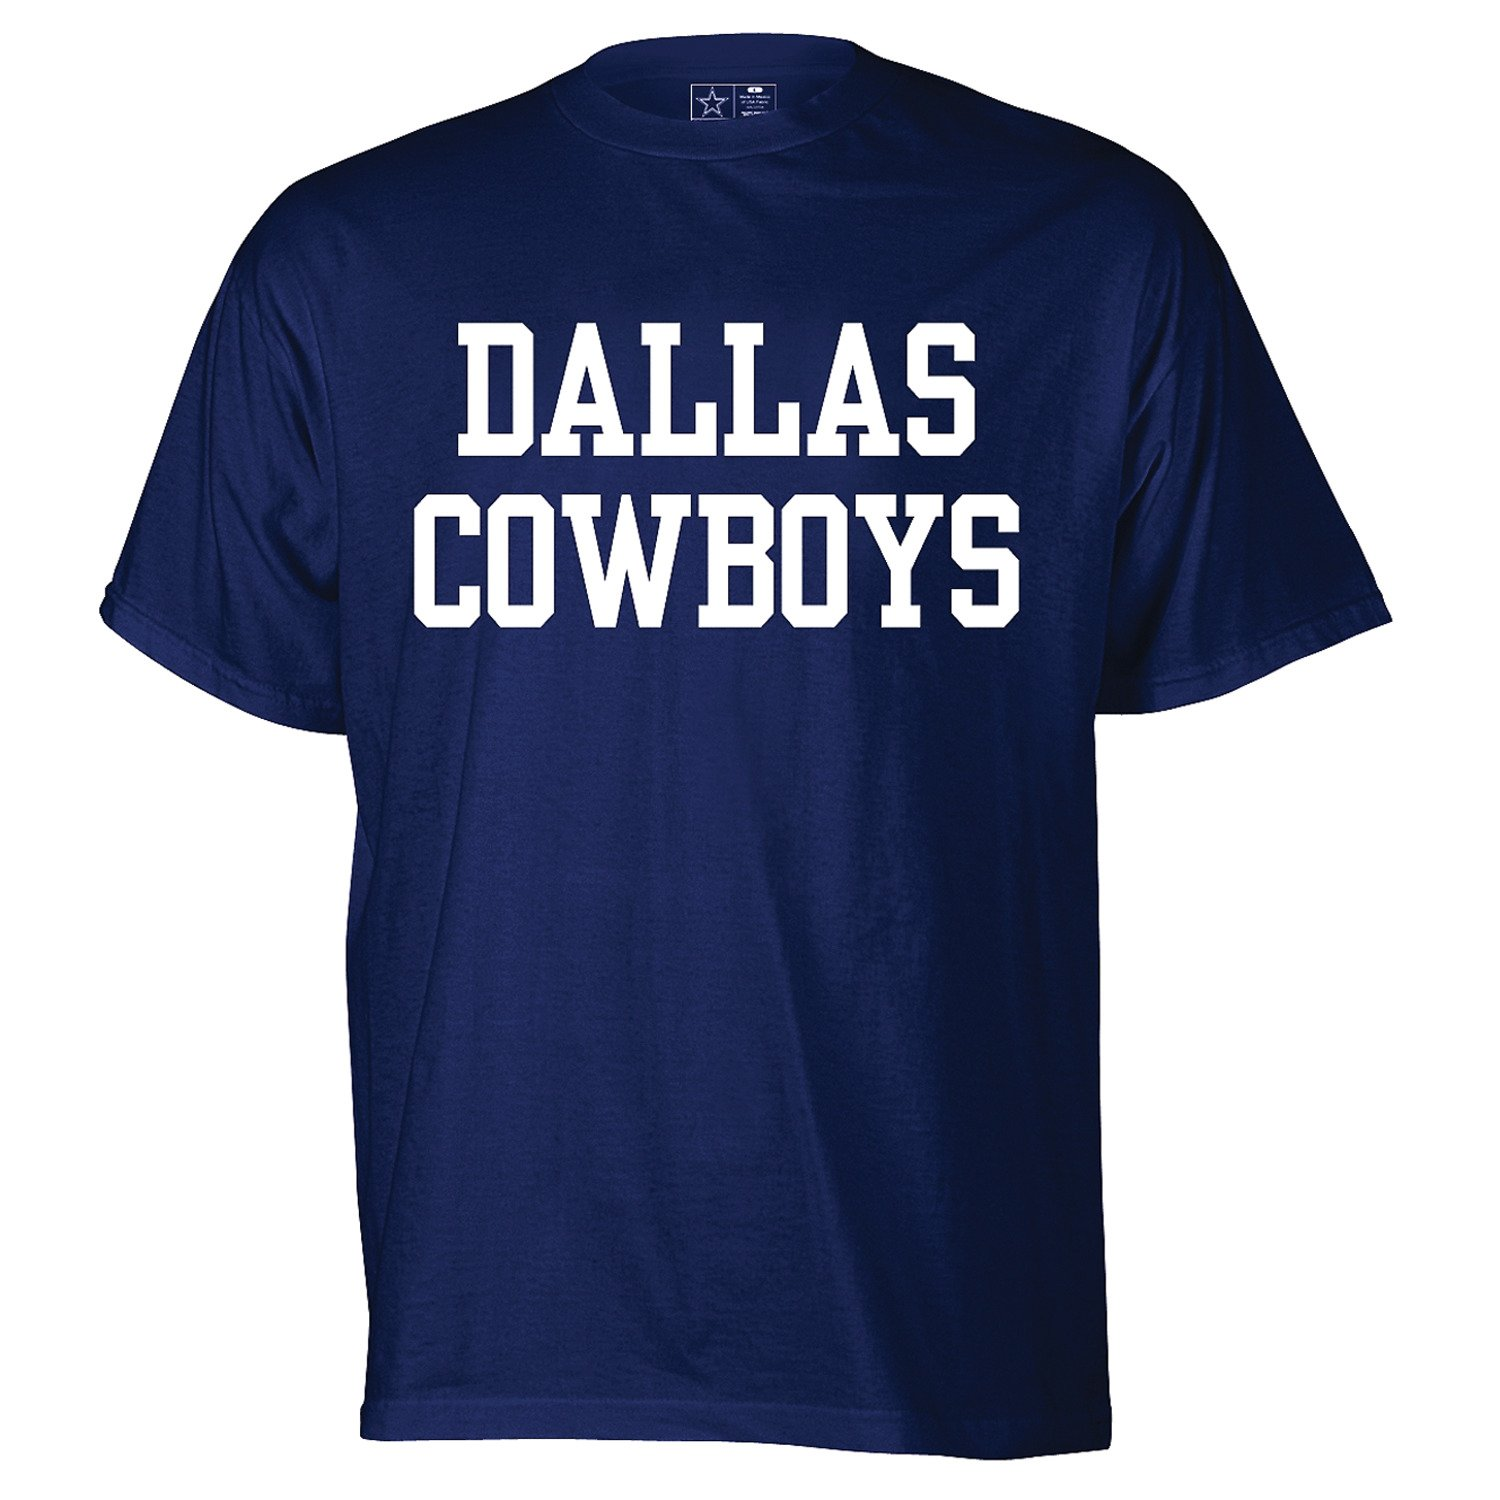 7b1f73b80a5 Display product reviews for Reebok Men s Dallas Cowboys Fan Gear Coaches  Short Sleeve T-shirt